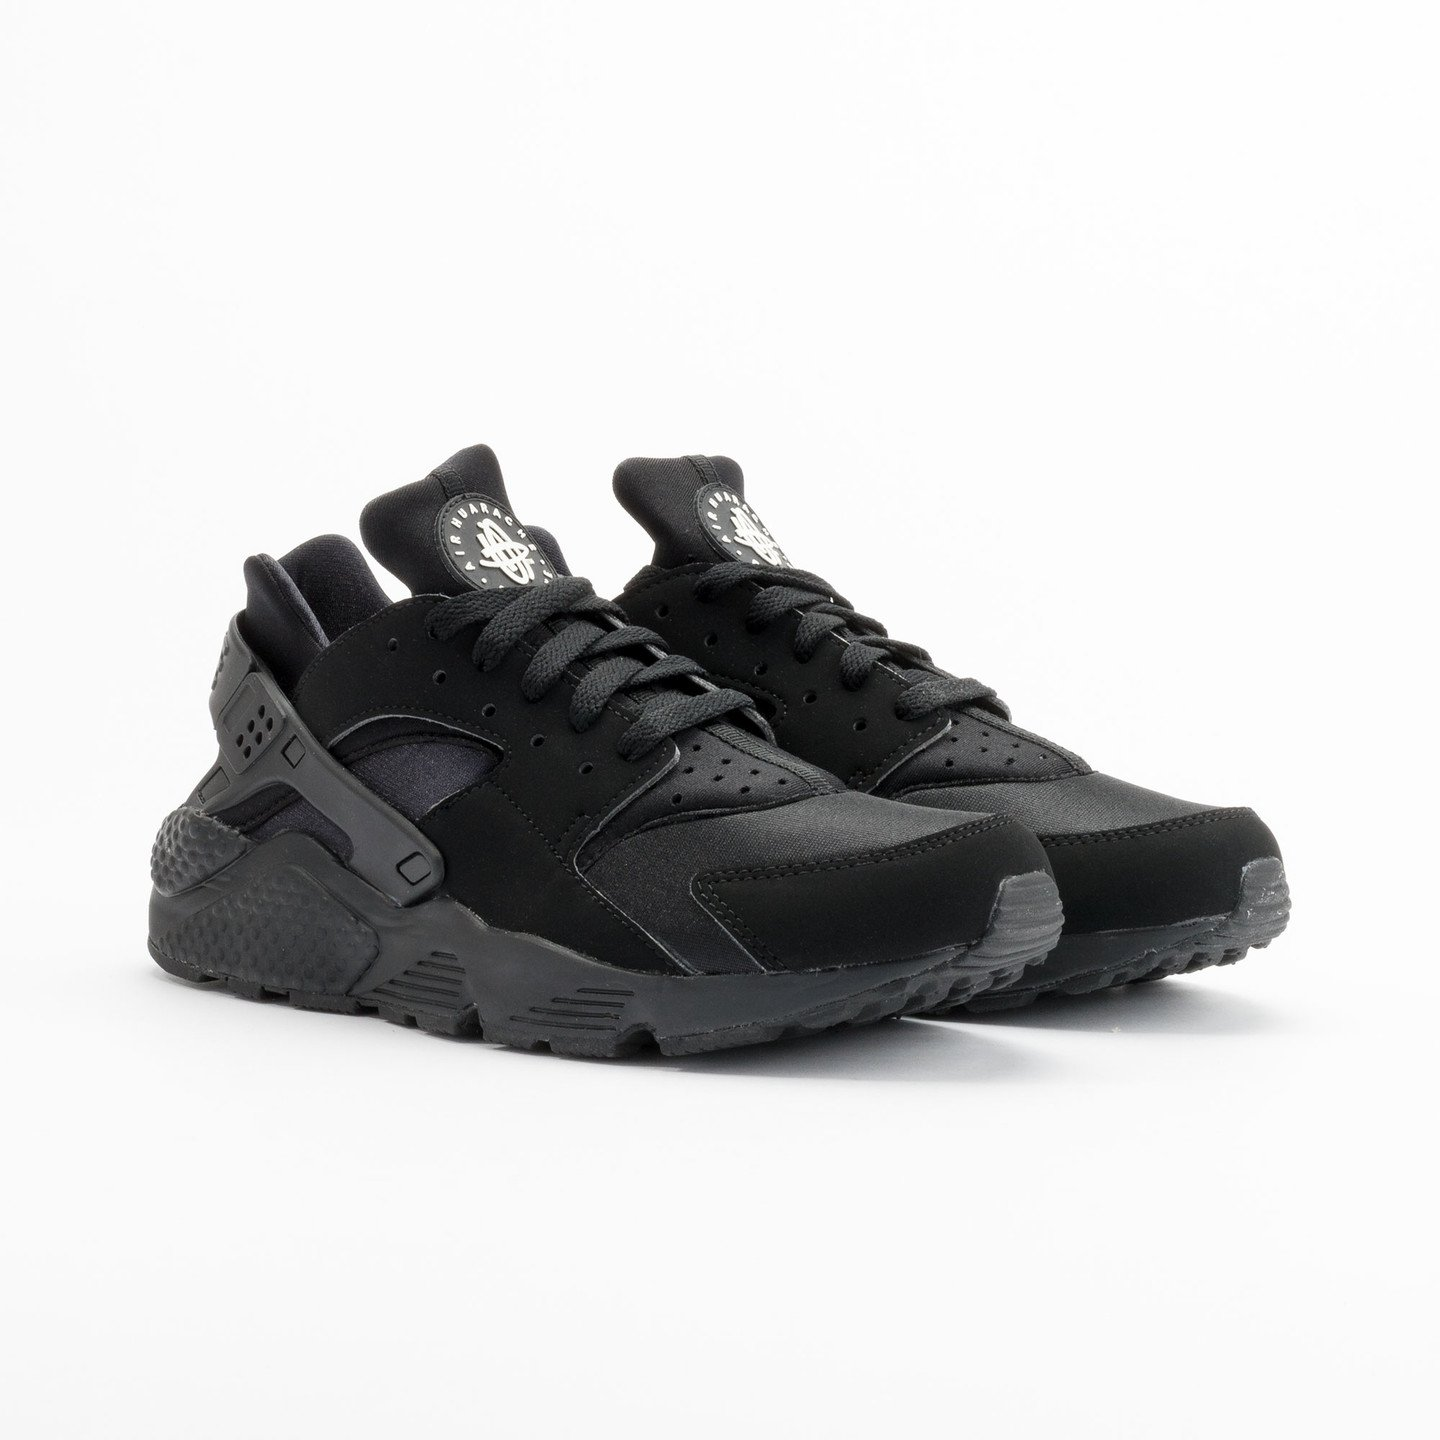 Nike Air Huarache Black/Black-White 318429-003-46